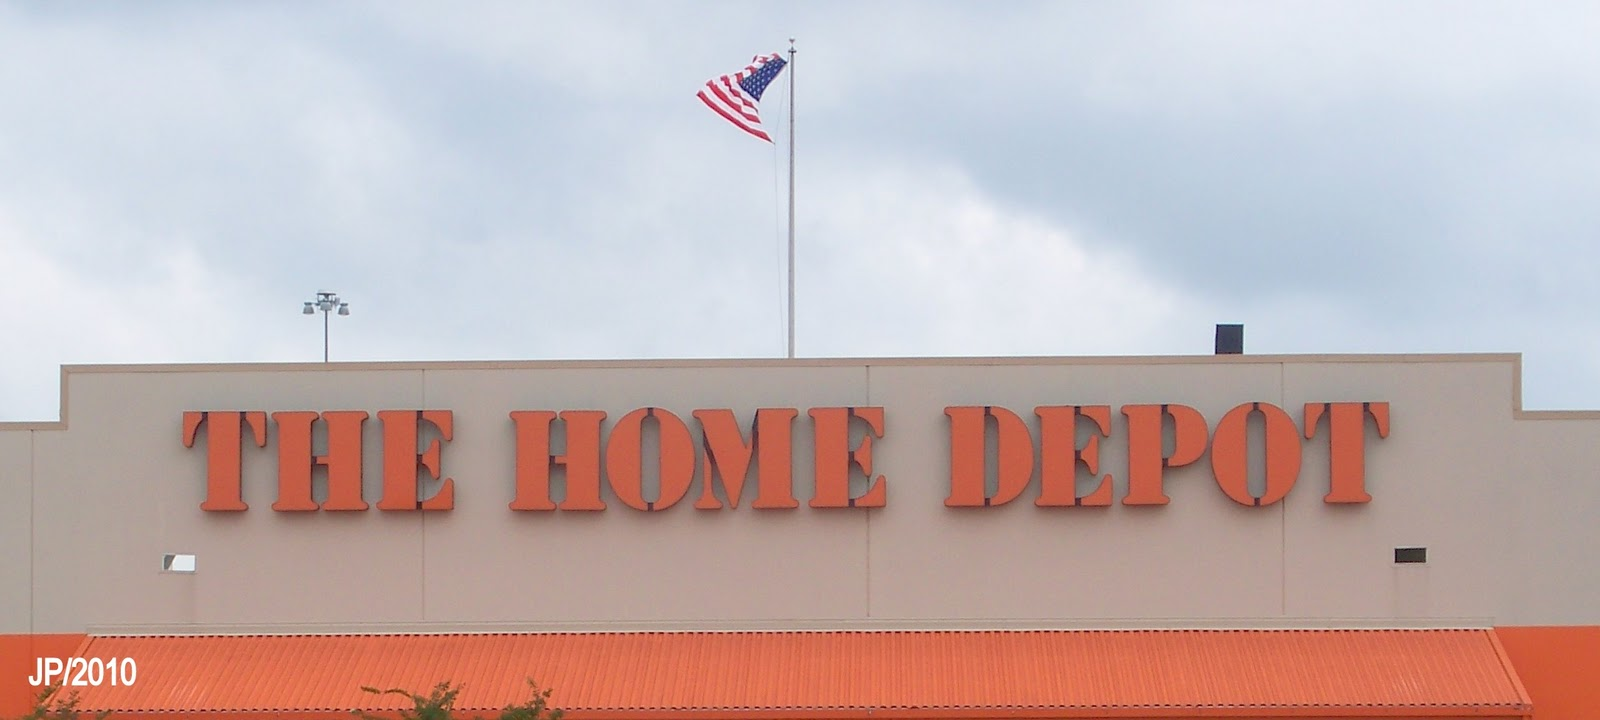 HOME DEPOT BUILDING MATERIALS Stores 2 Hollywood Florida Broward County Home Depot Lumber